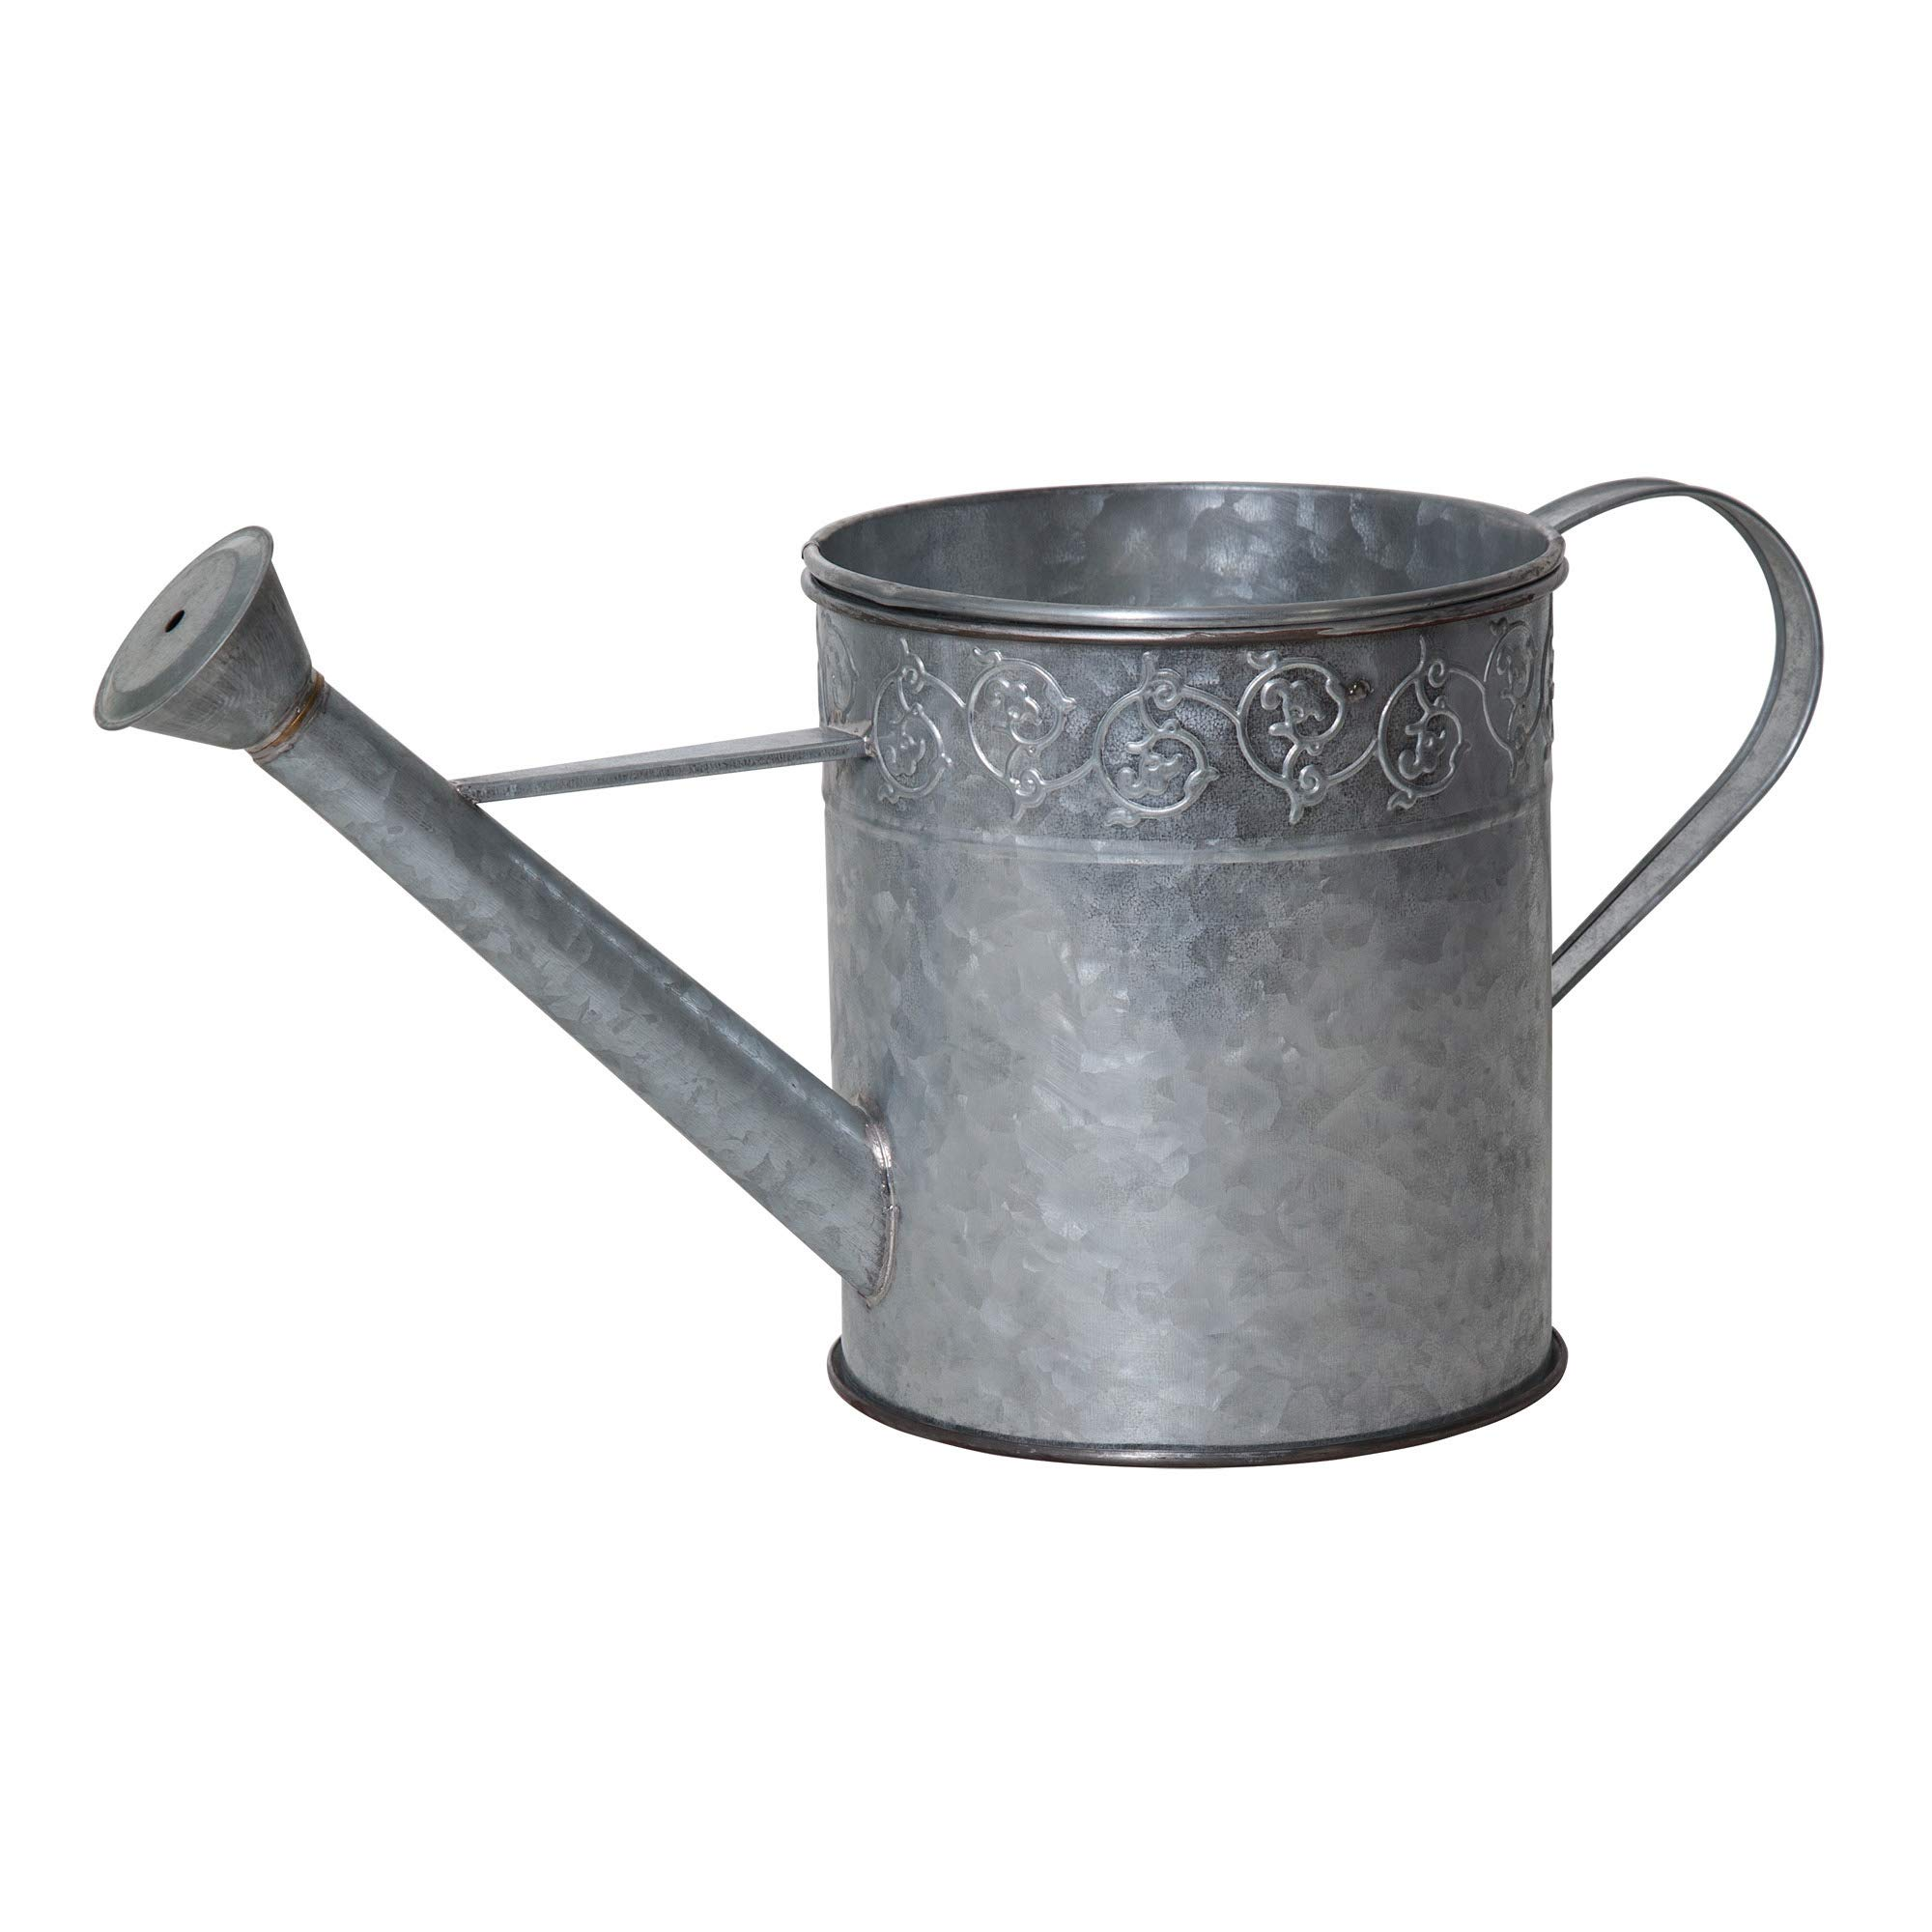 True Value Water Can Pond Spitter, Silver by True Value